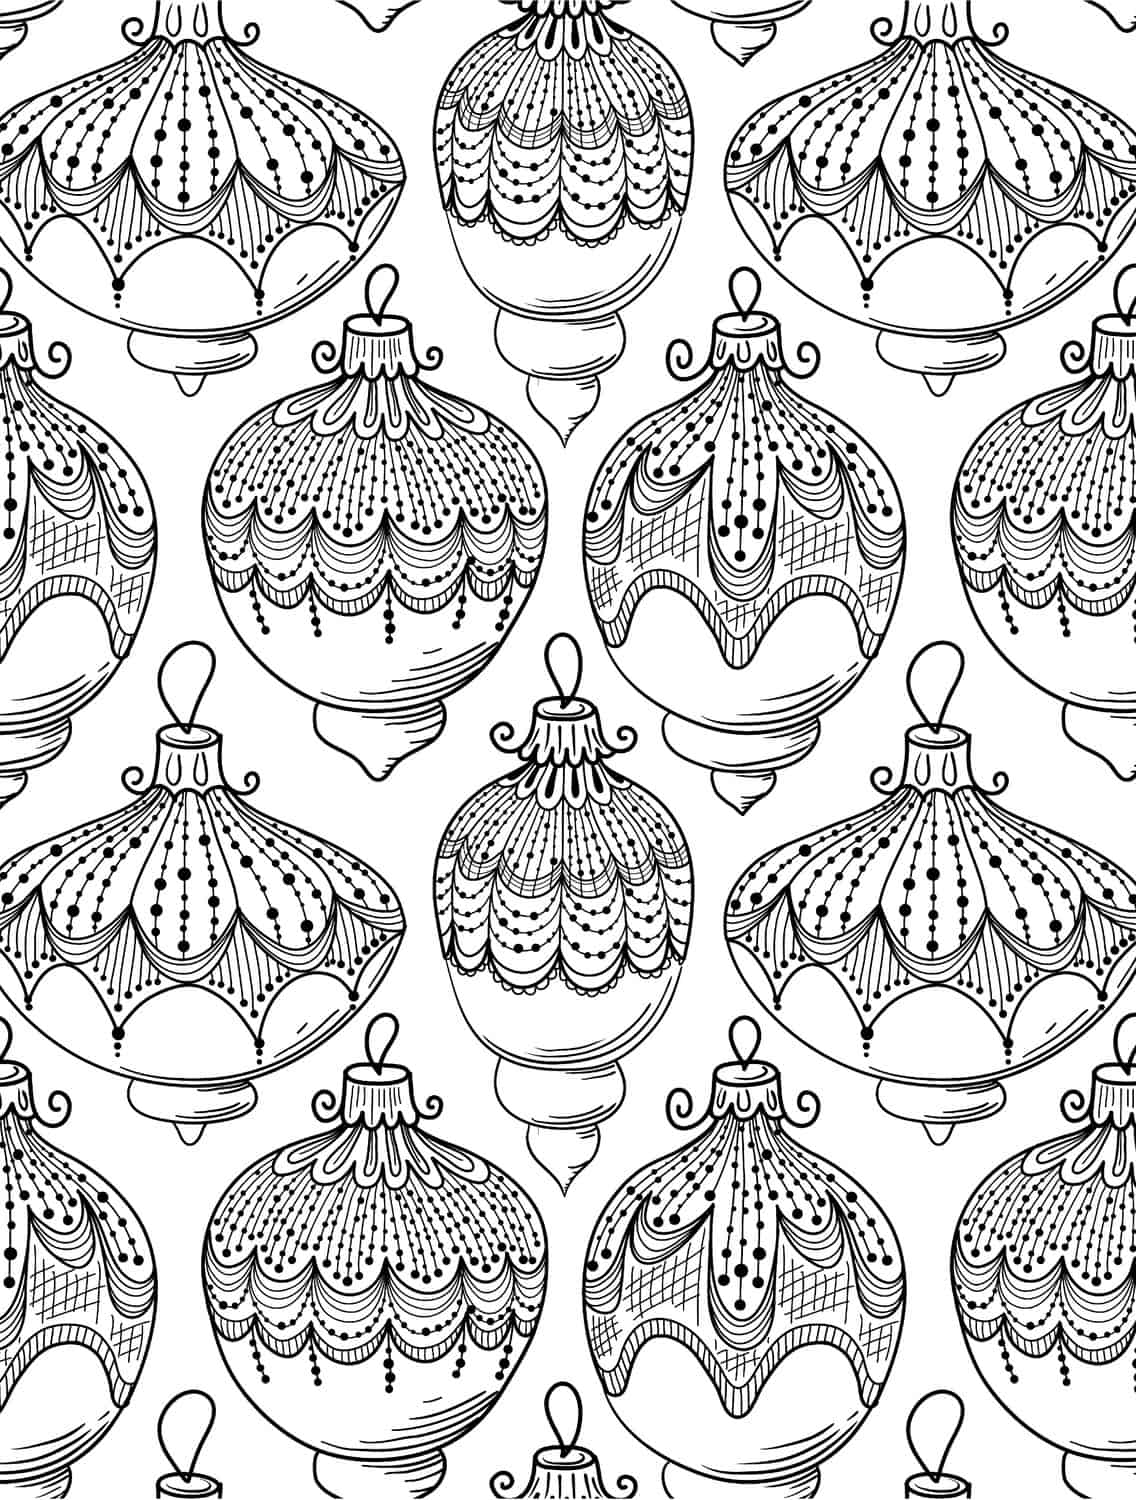 10 Free Printable Holiday Adult Coloring Pages | christmas colouring pages for adults